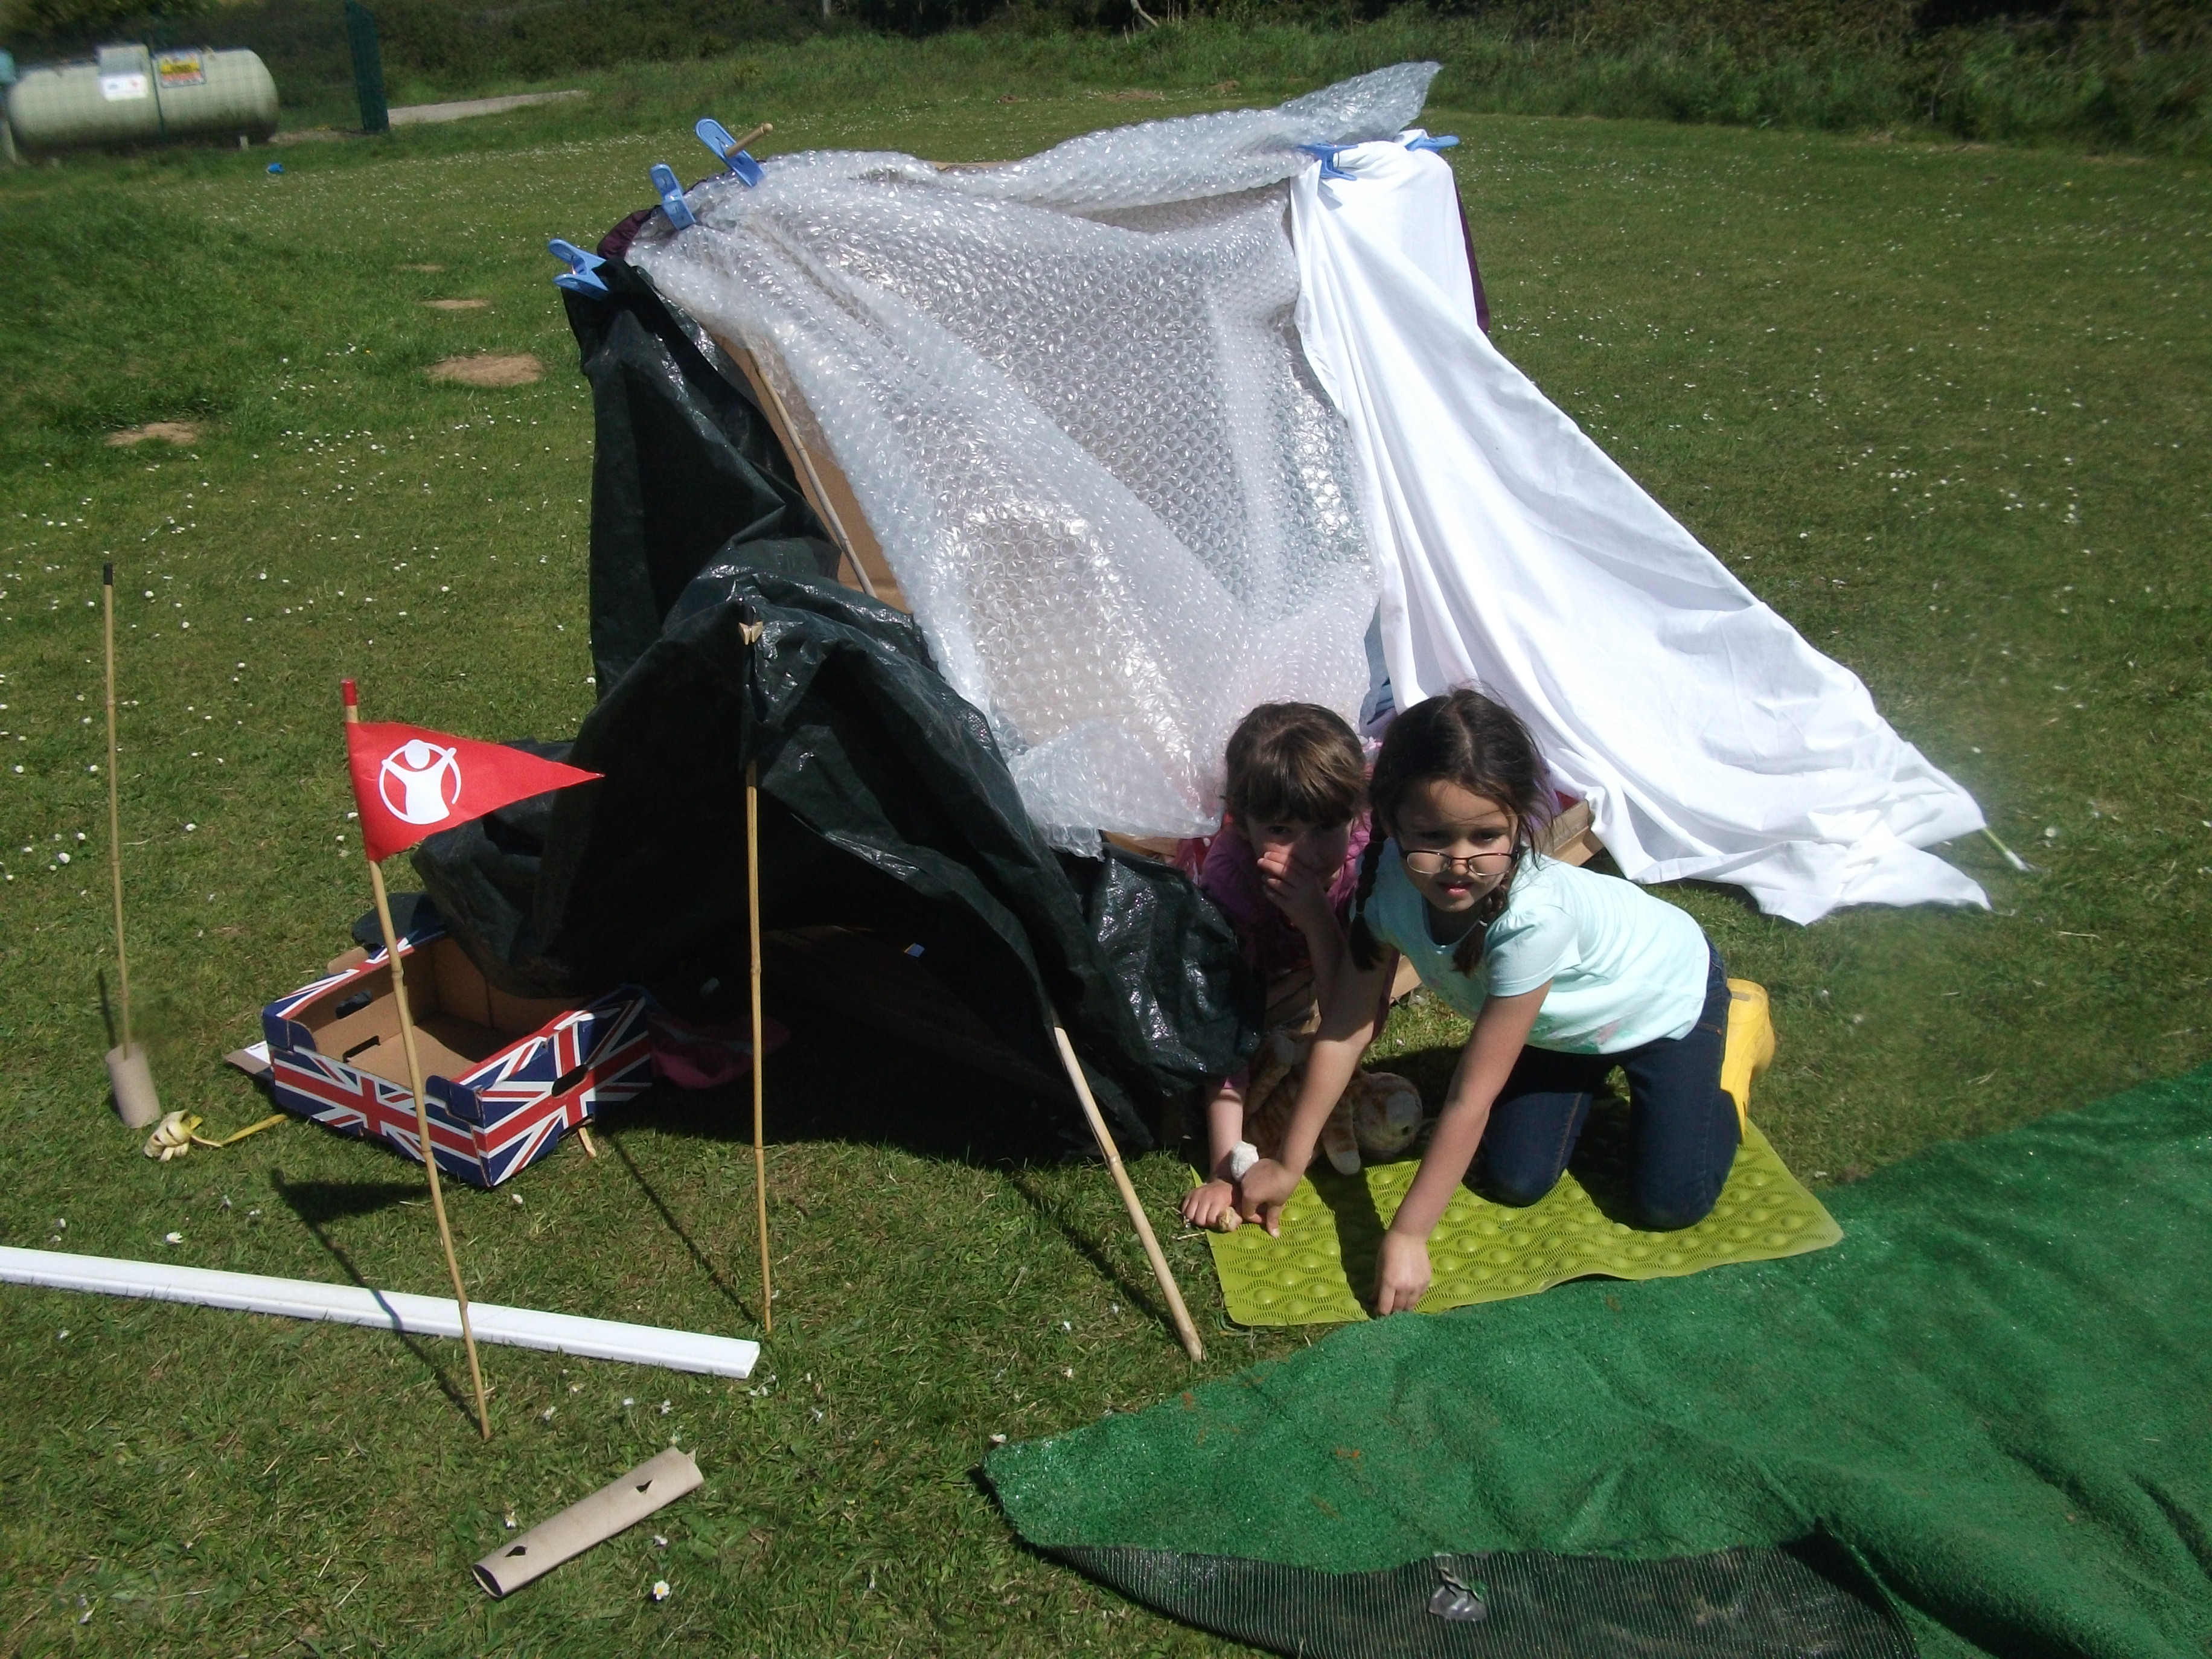 Build A Den Day 014